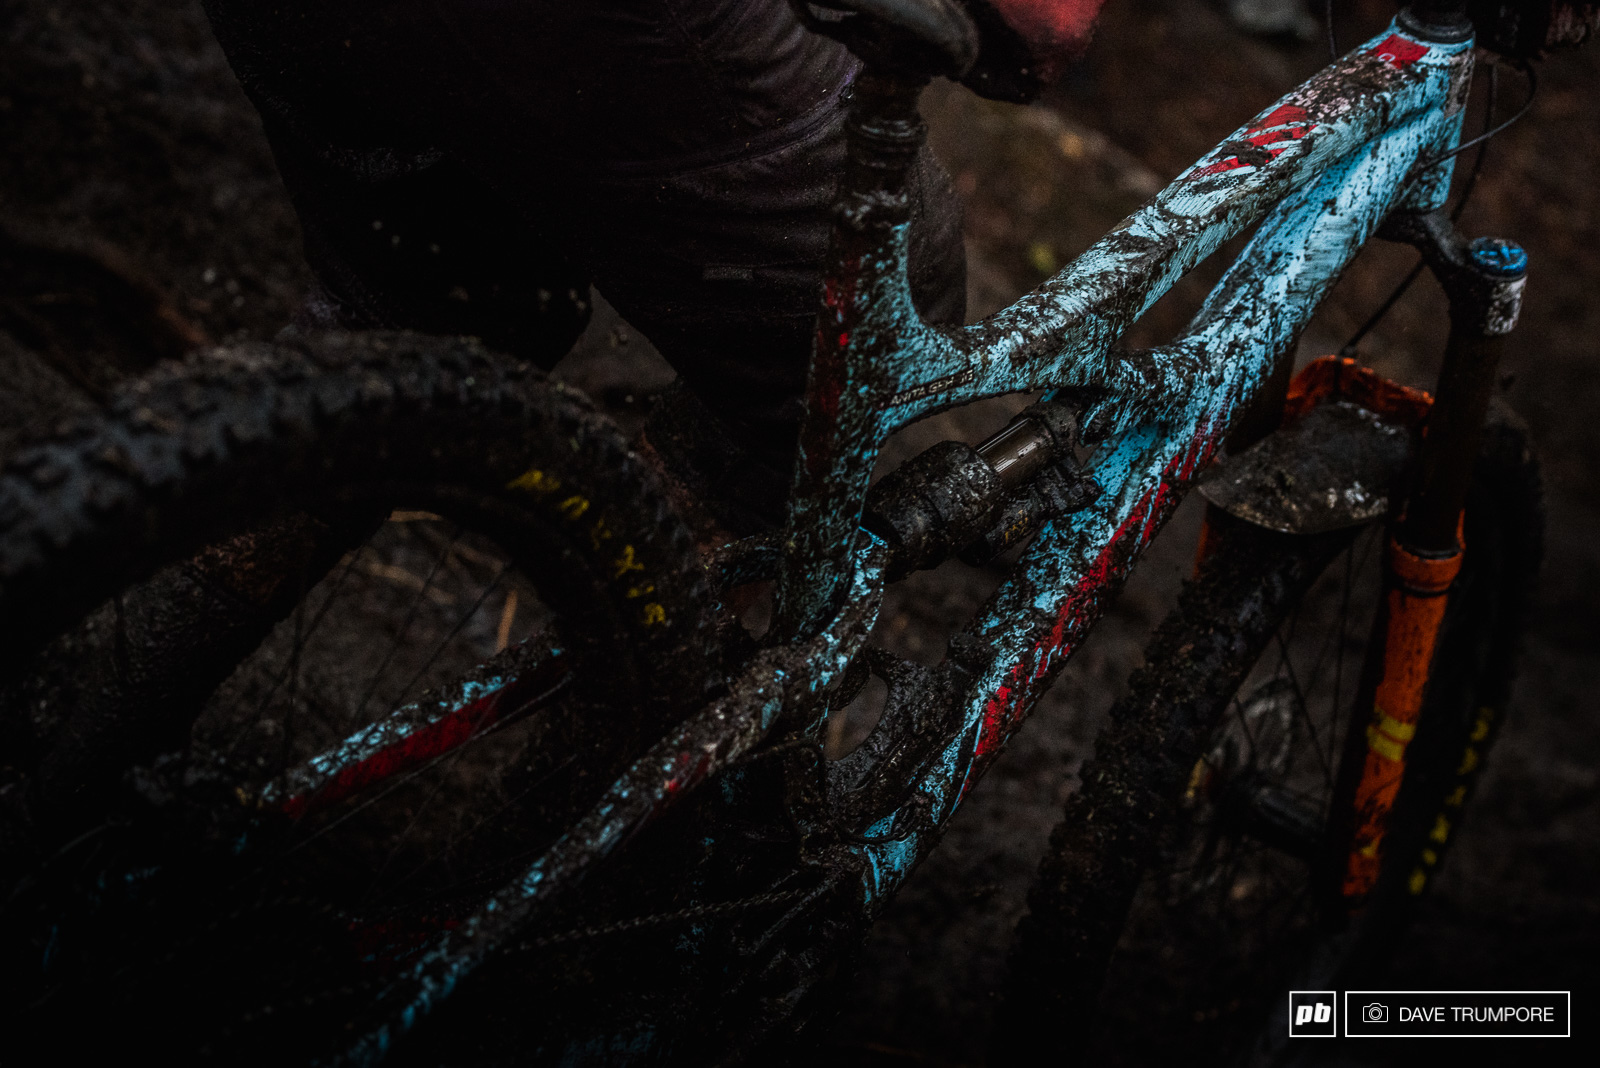 the near constant rain meant the mud was much less sticky than we saw in rotorua. And while it wasn t clogging tires and frames here the constant wet grit destroyed the brake pads of more than a few rides by days end.